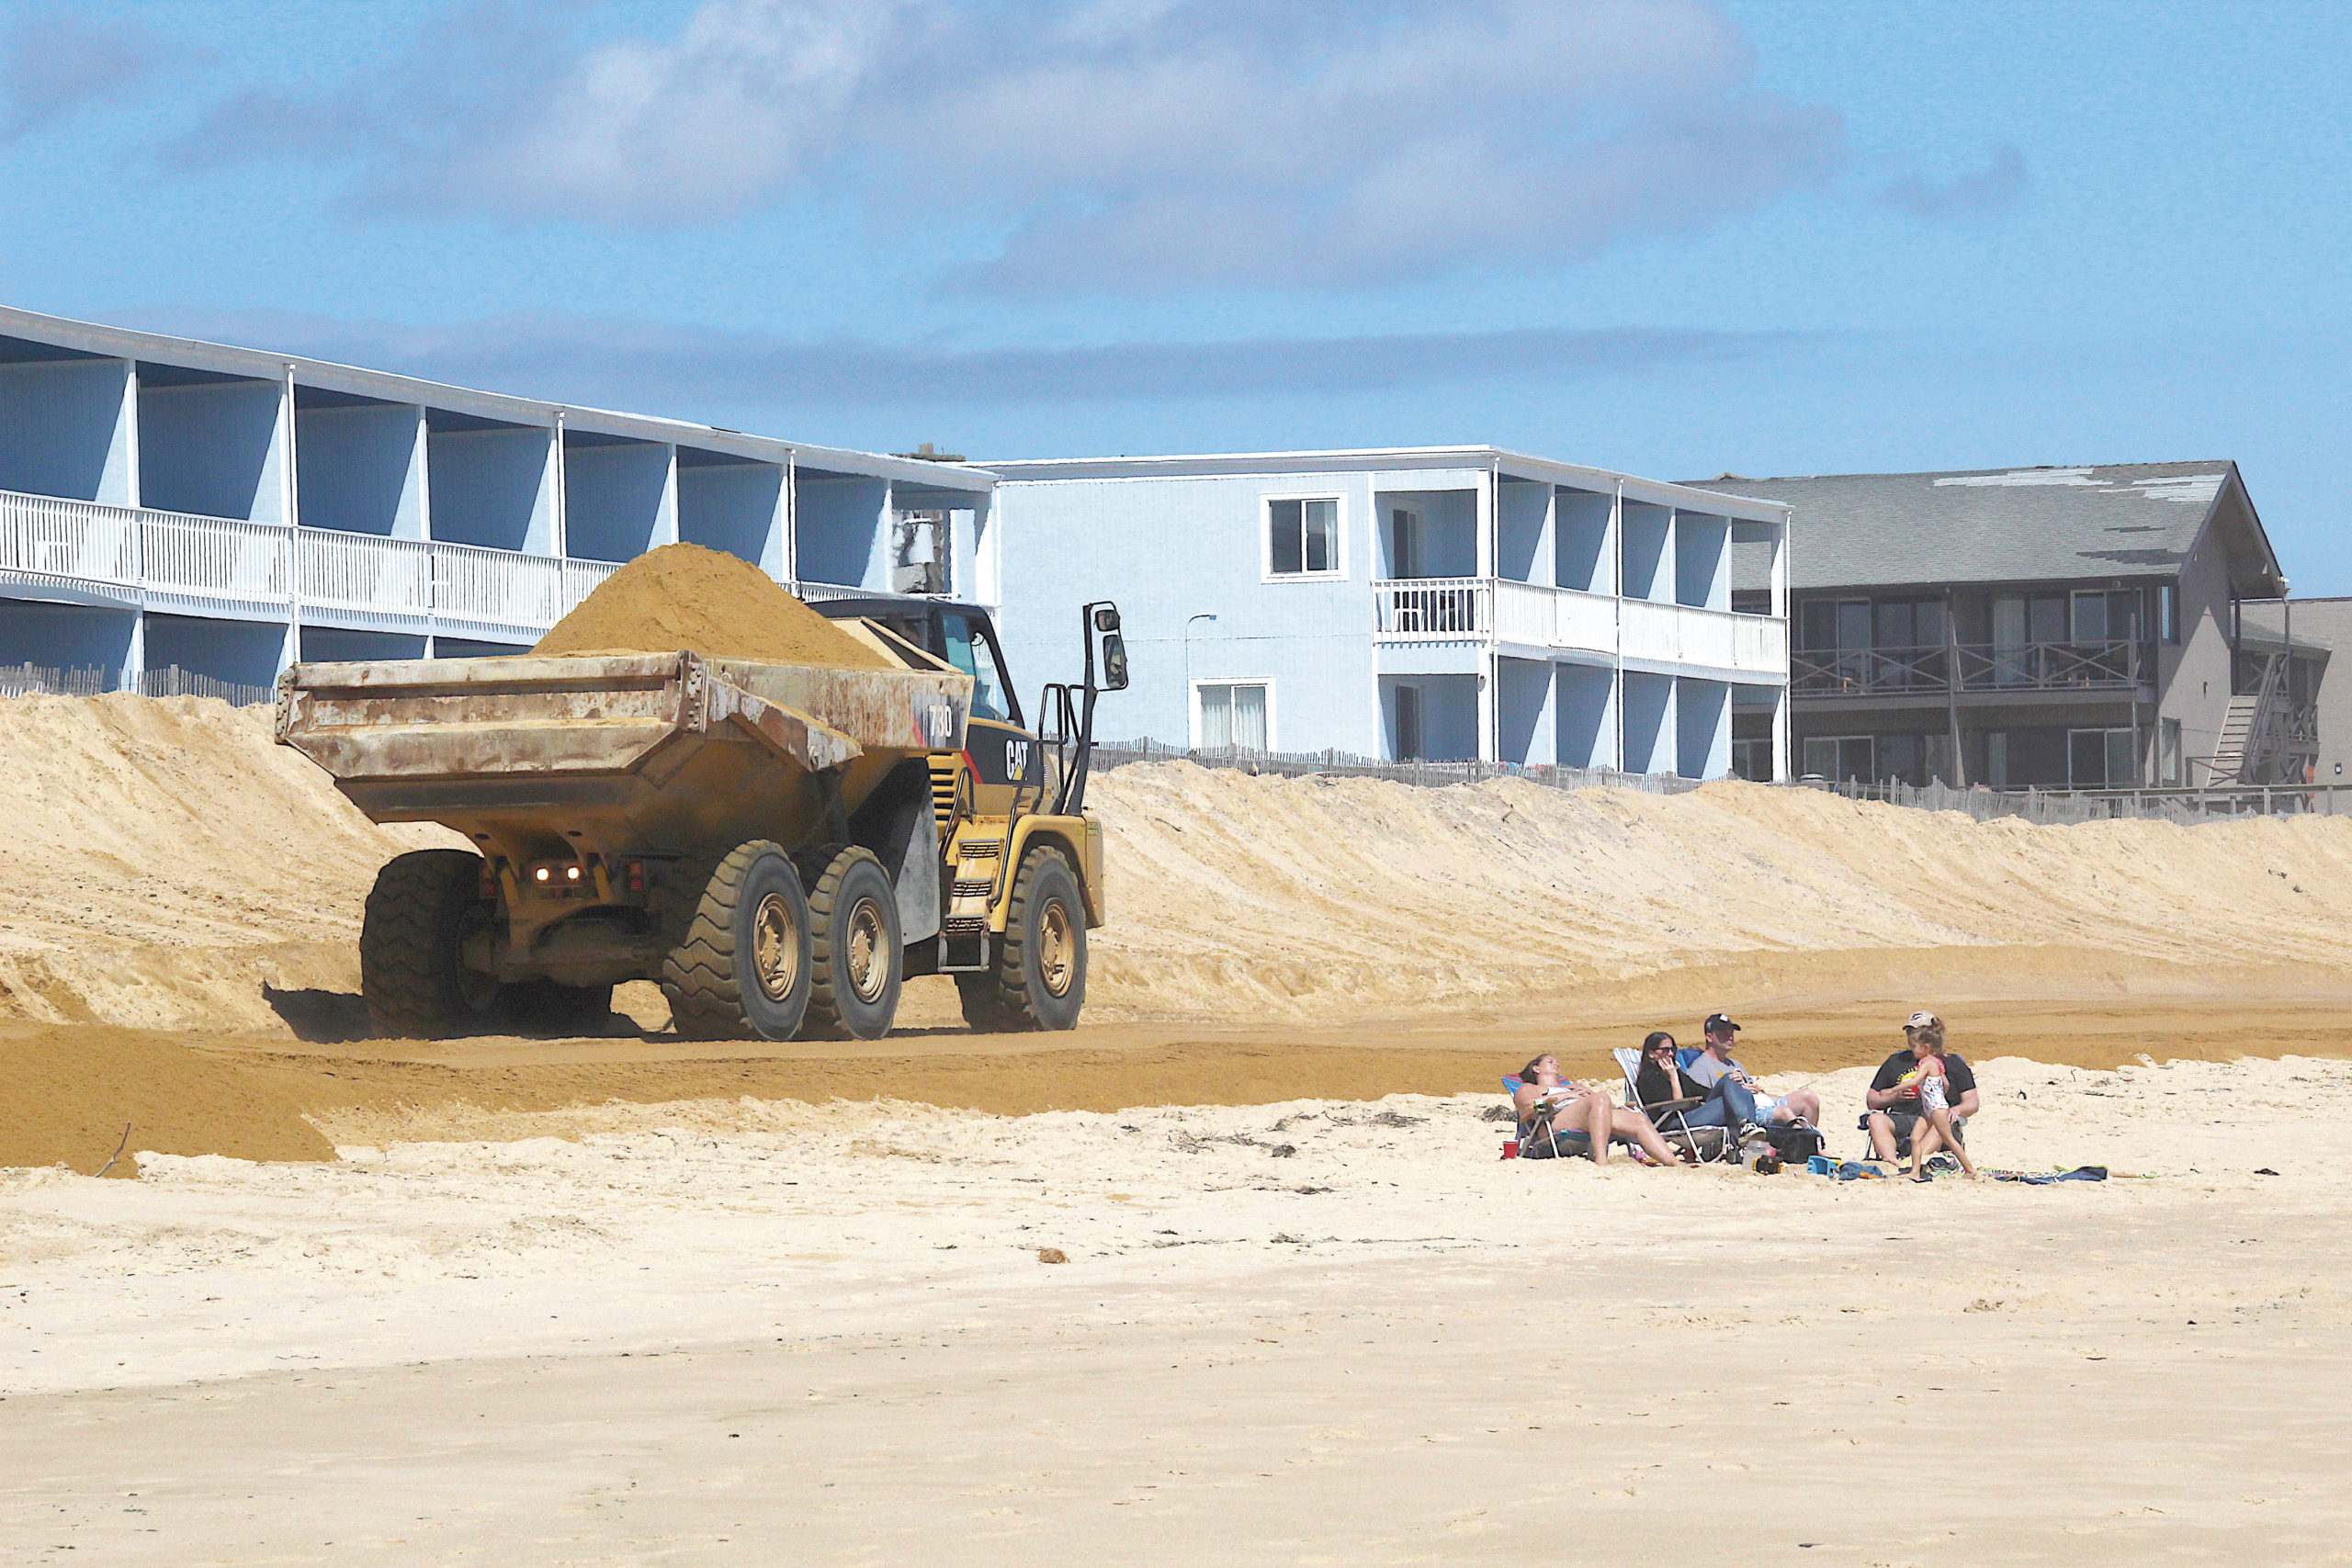 Rites of Spring April 24 -- The ocean beach in downtown Montauk was rebuilt in preparation for summer 2019, as it had been in previous years. East Hampton Town had more than 50,000 tons of sand trucked in to cover sandbags intended to protect oceanfront hotels and other properties, at a cost of slightly more than $1 million to be split between the town and Suffolk County.